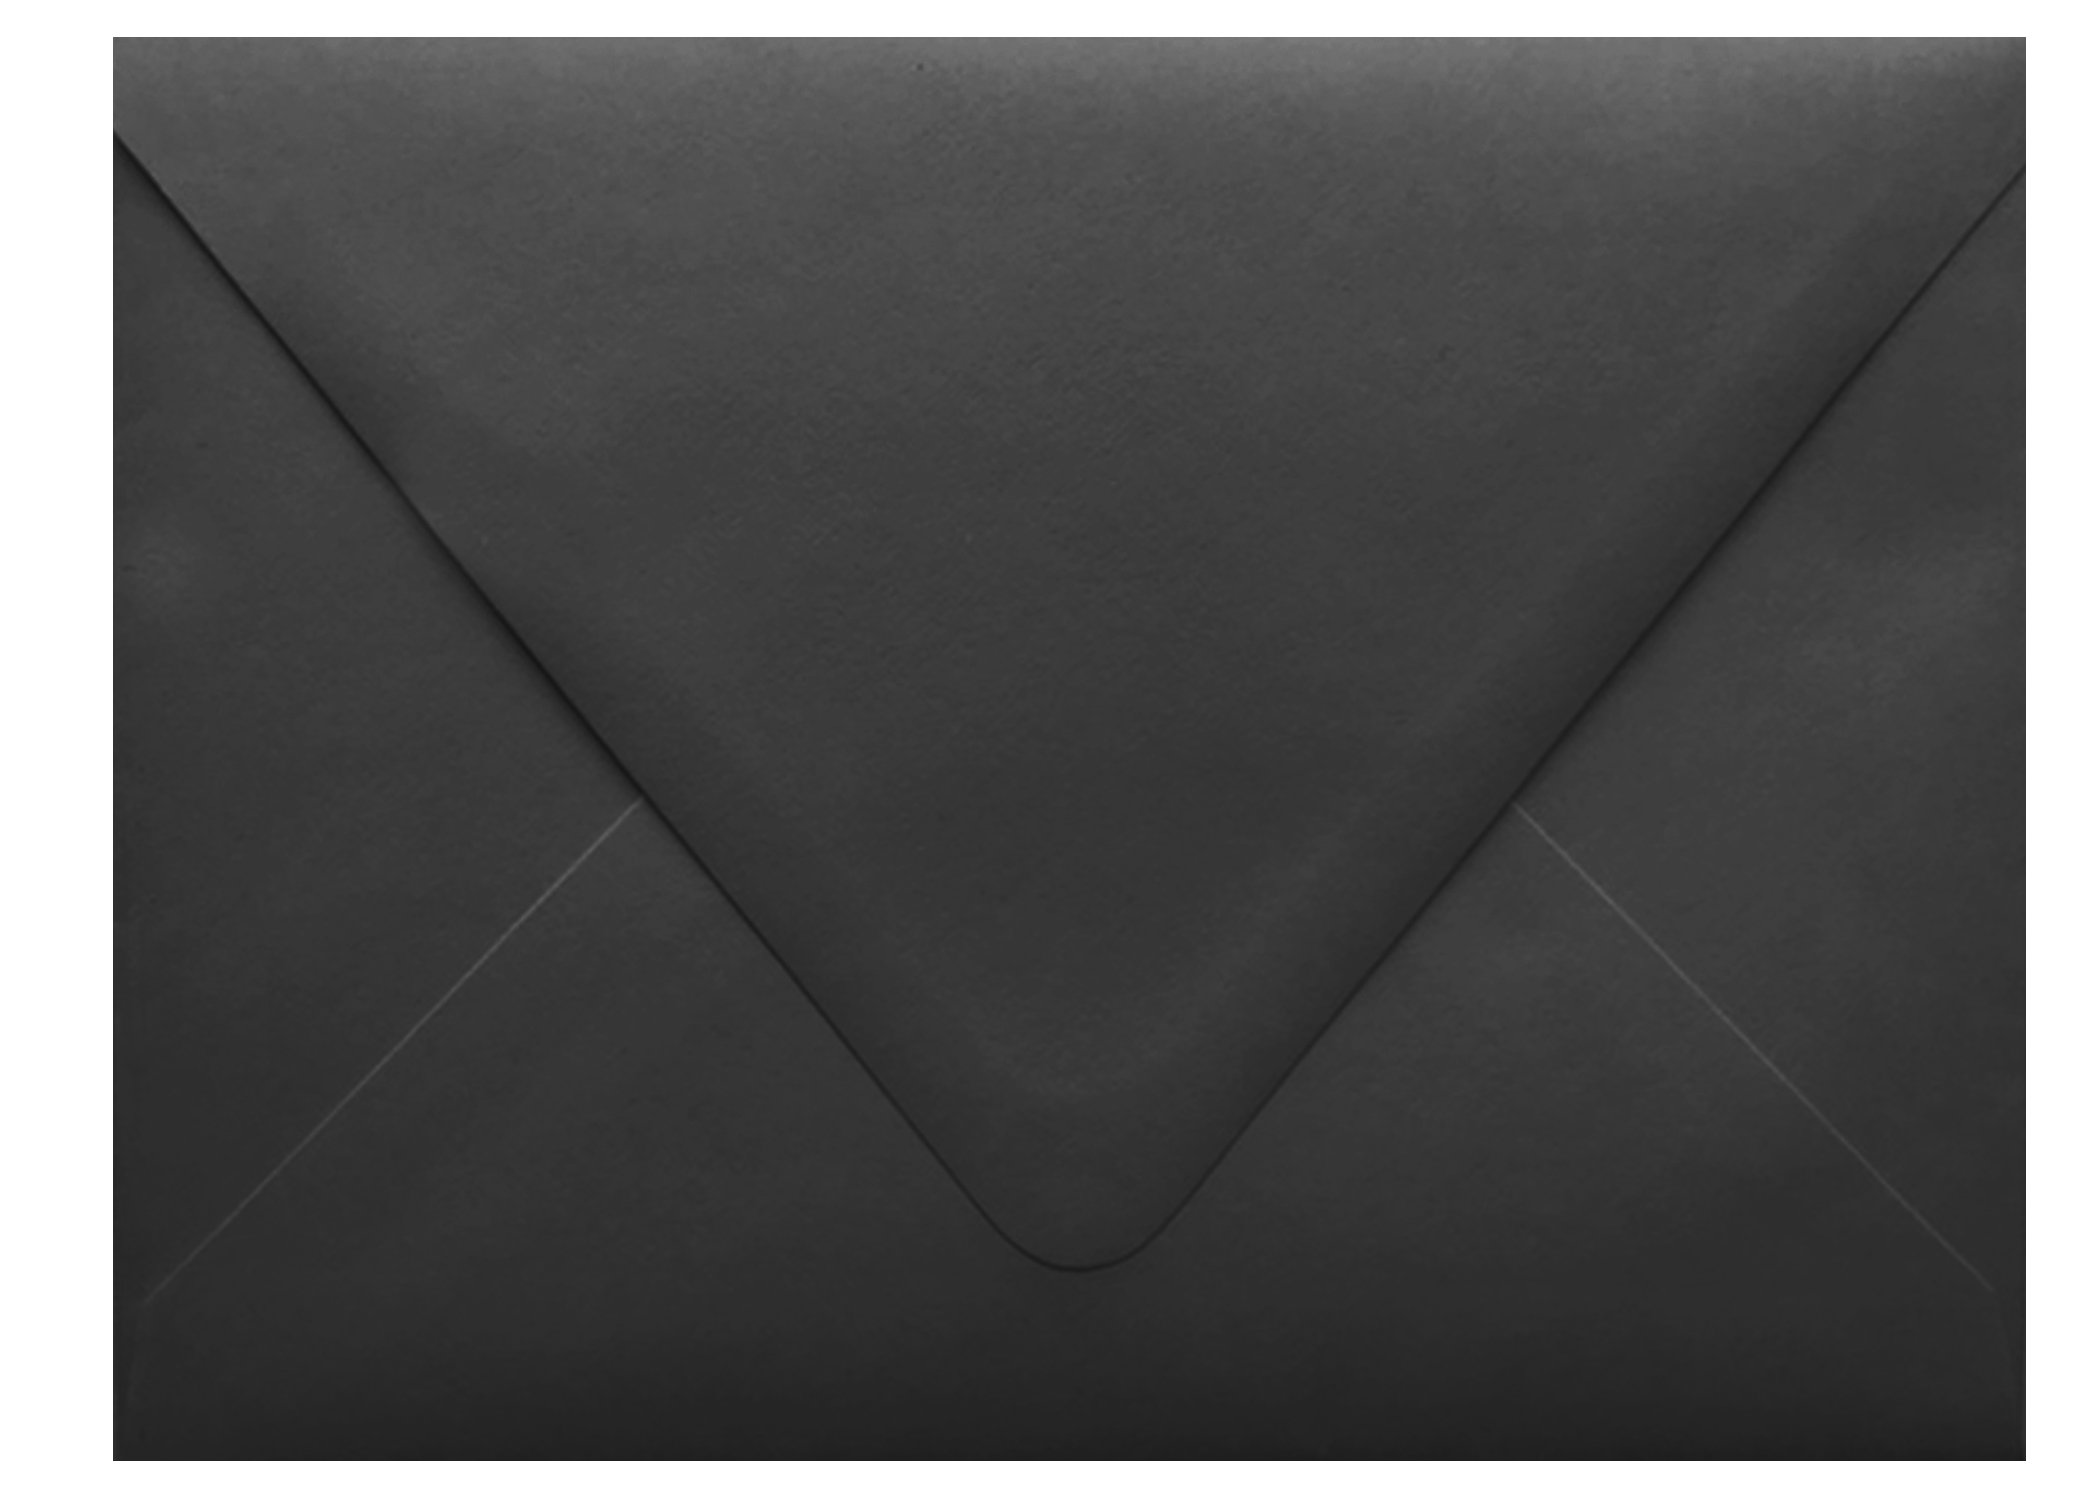 Jet Black Contour Euro Flap 100 Boxed A7-70lb Envelopes (5-1/4 x 7-1/4) for 5 x 7 Invitations Announcements Weddings Showers Communion Confirmation Cards by The Envelope Gallery